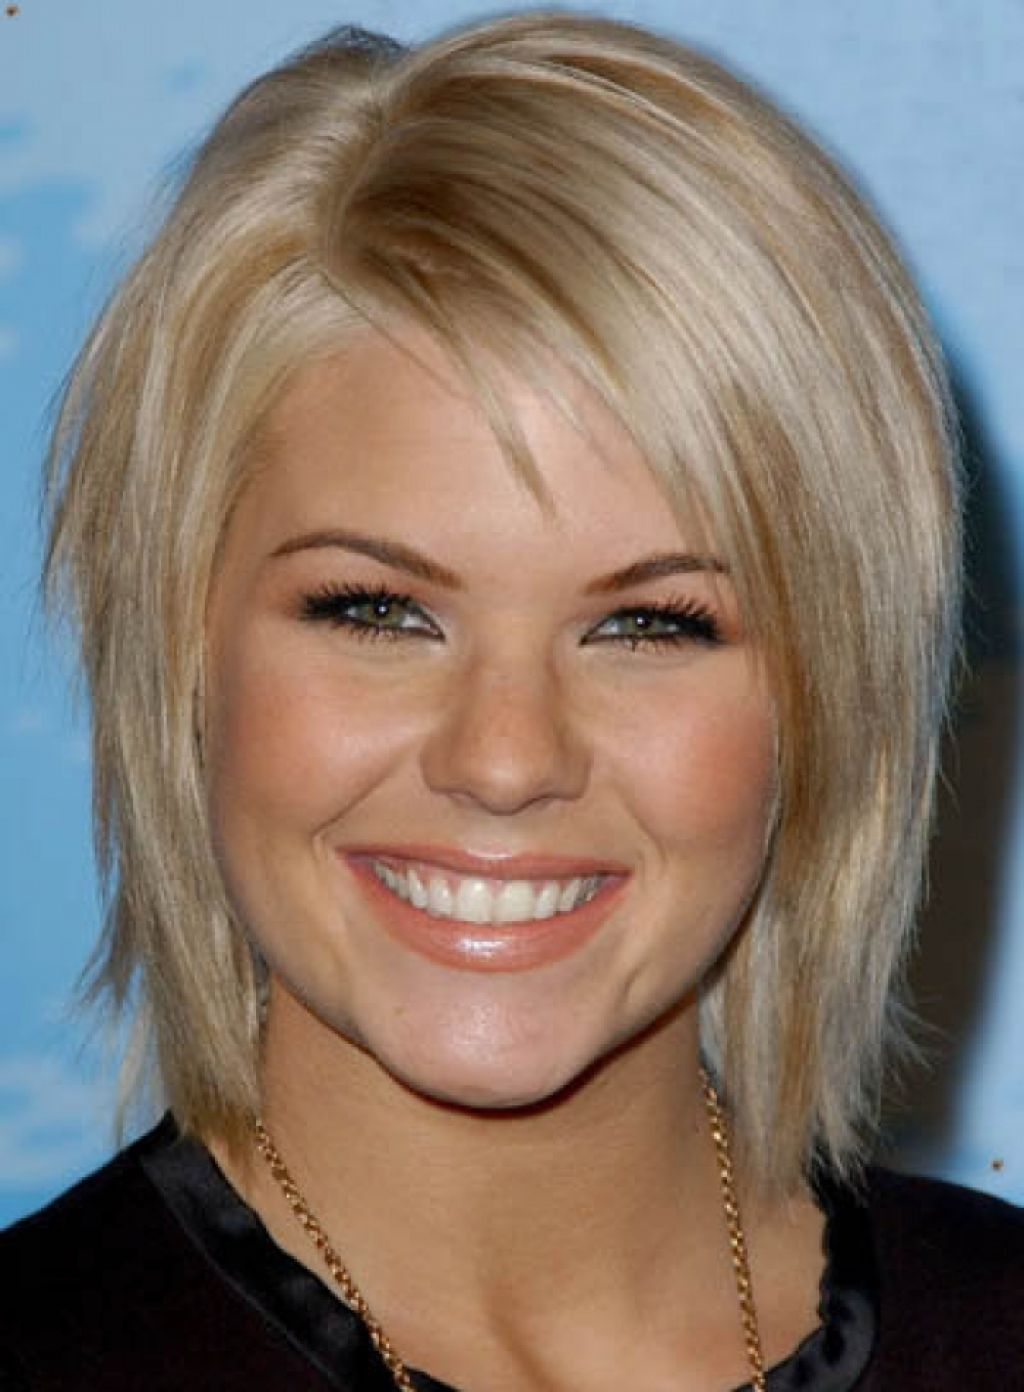 Easy Care Short Hairstyles For Straight Hair  Hairstyles For - Hairstyles for fine straight hair